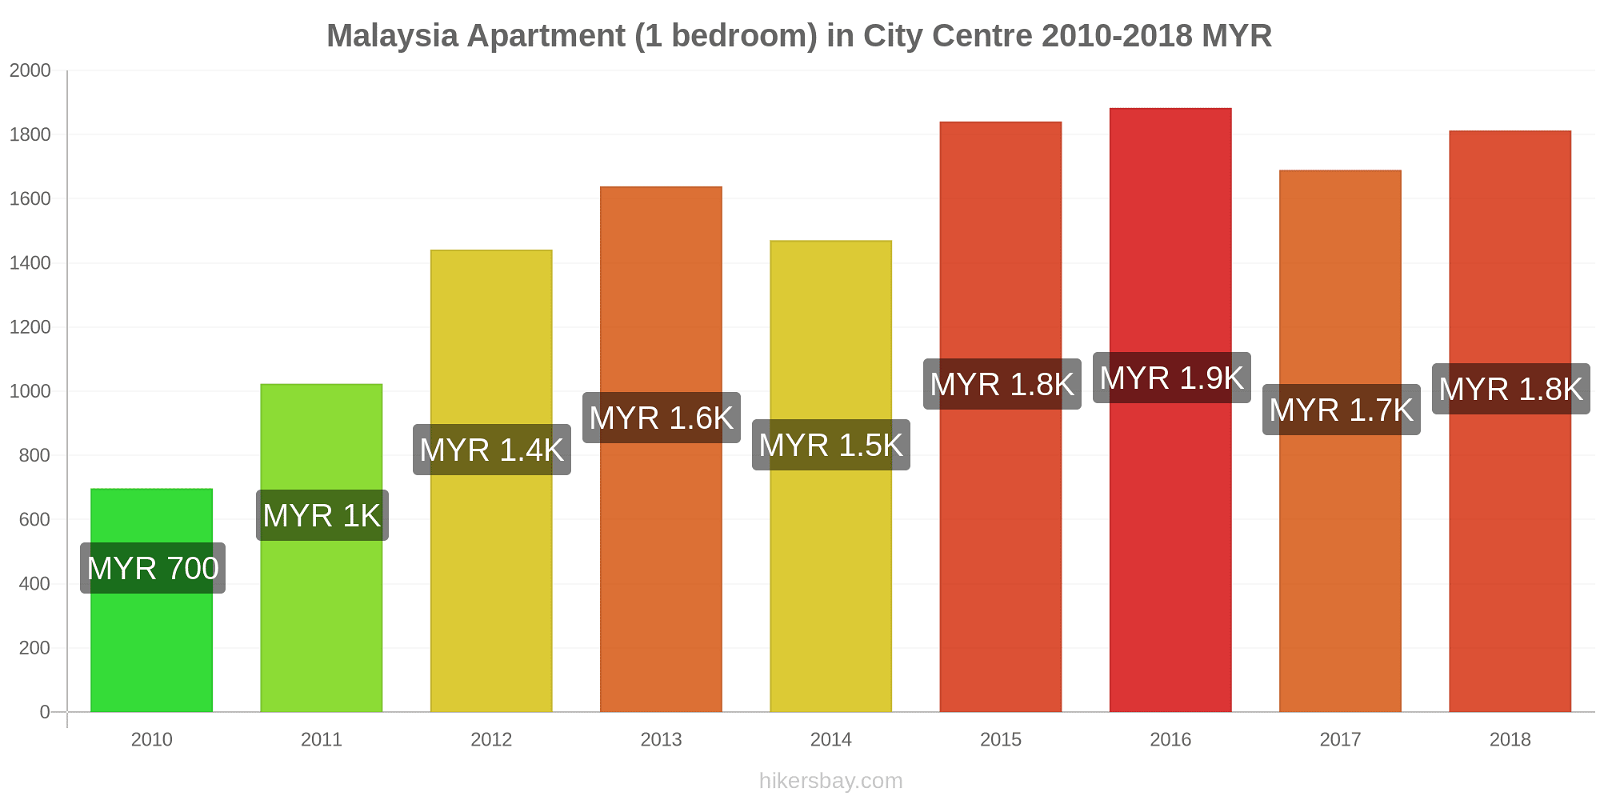 Malaysia price changes Apartment (1 bedroom) in City Centre hikersbay.com